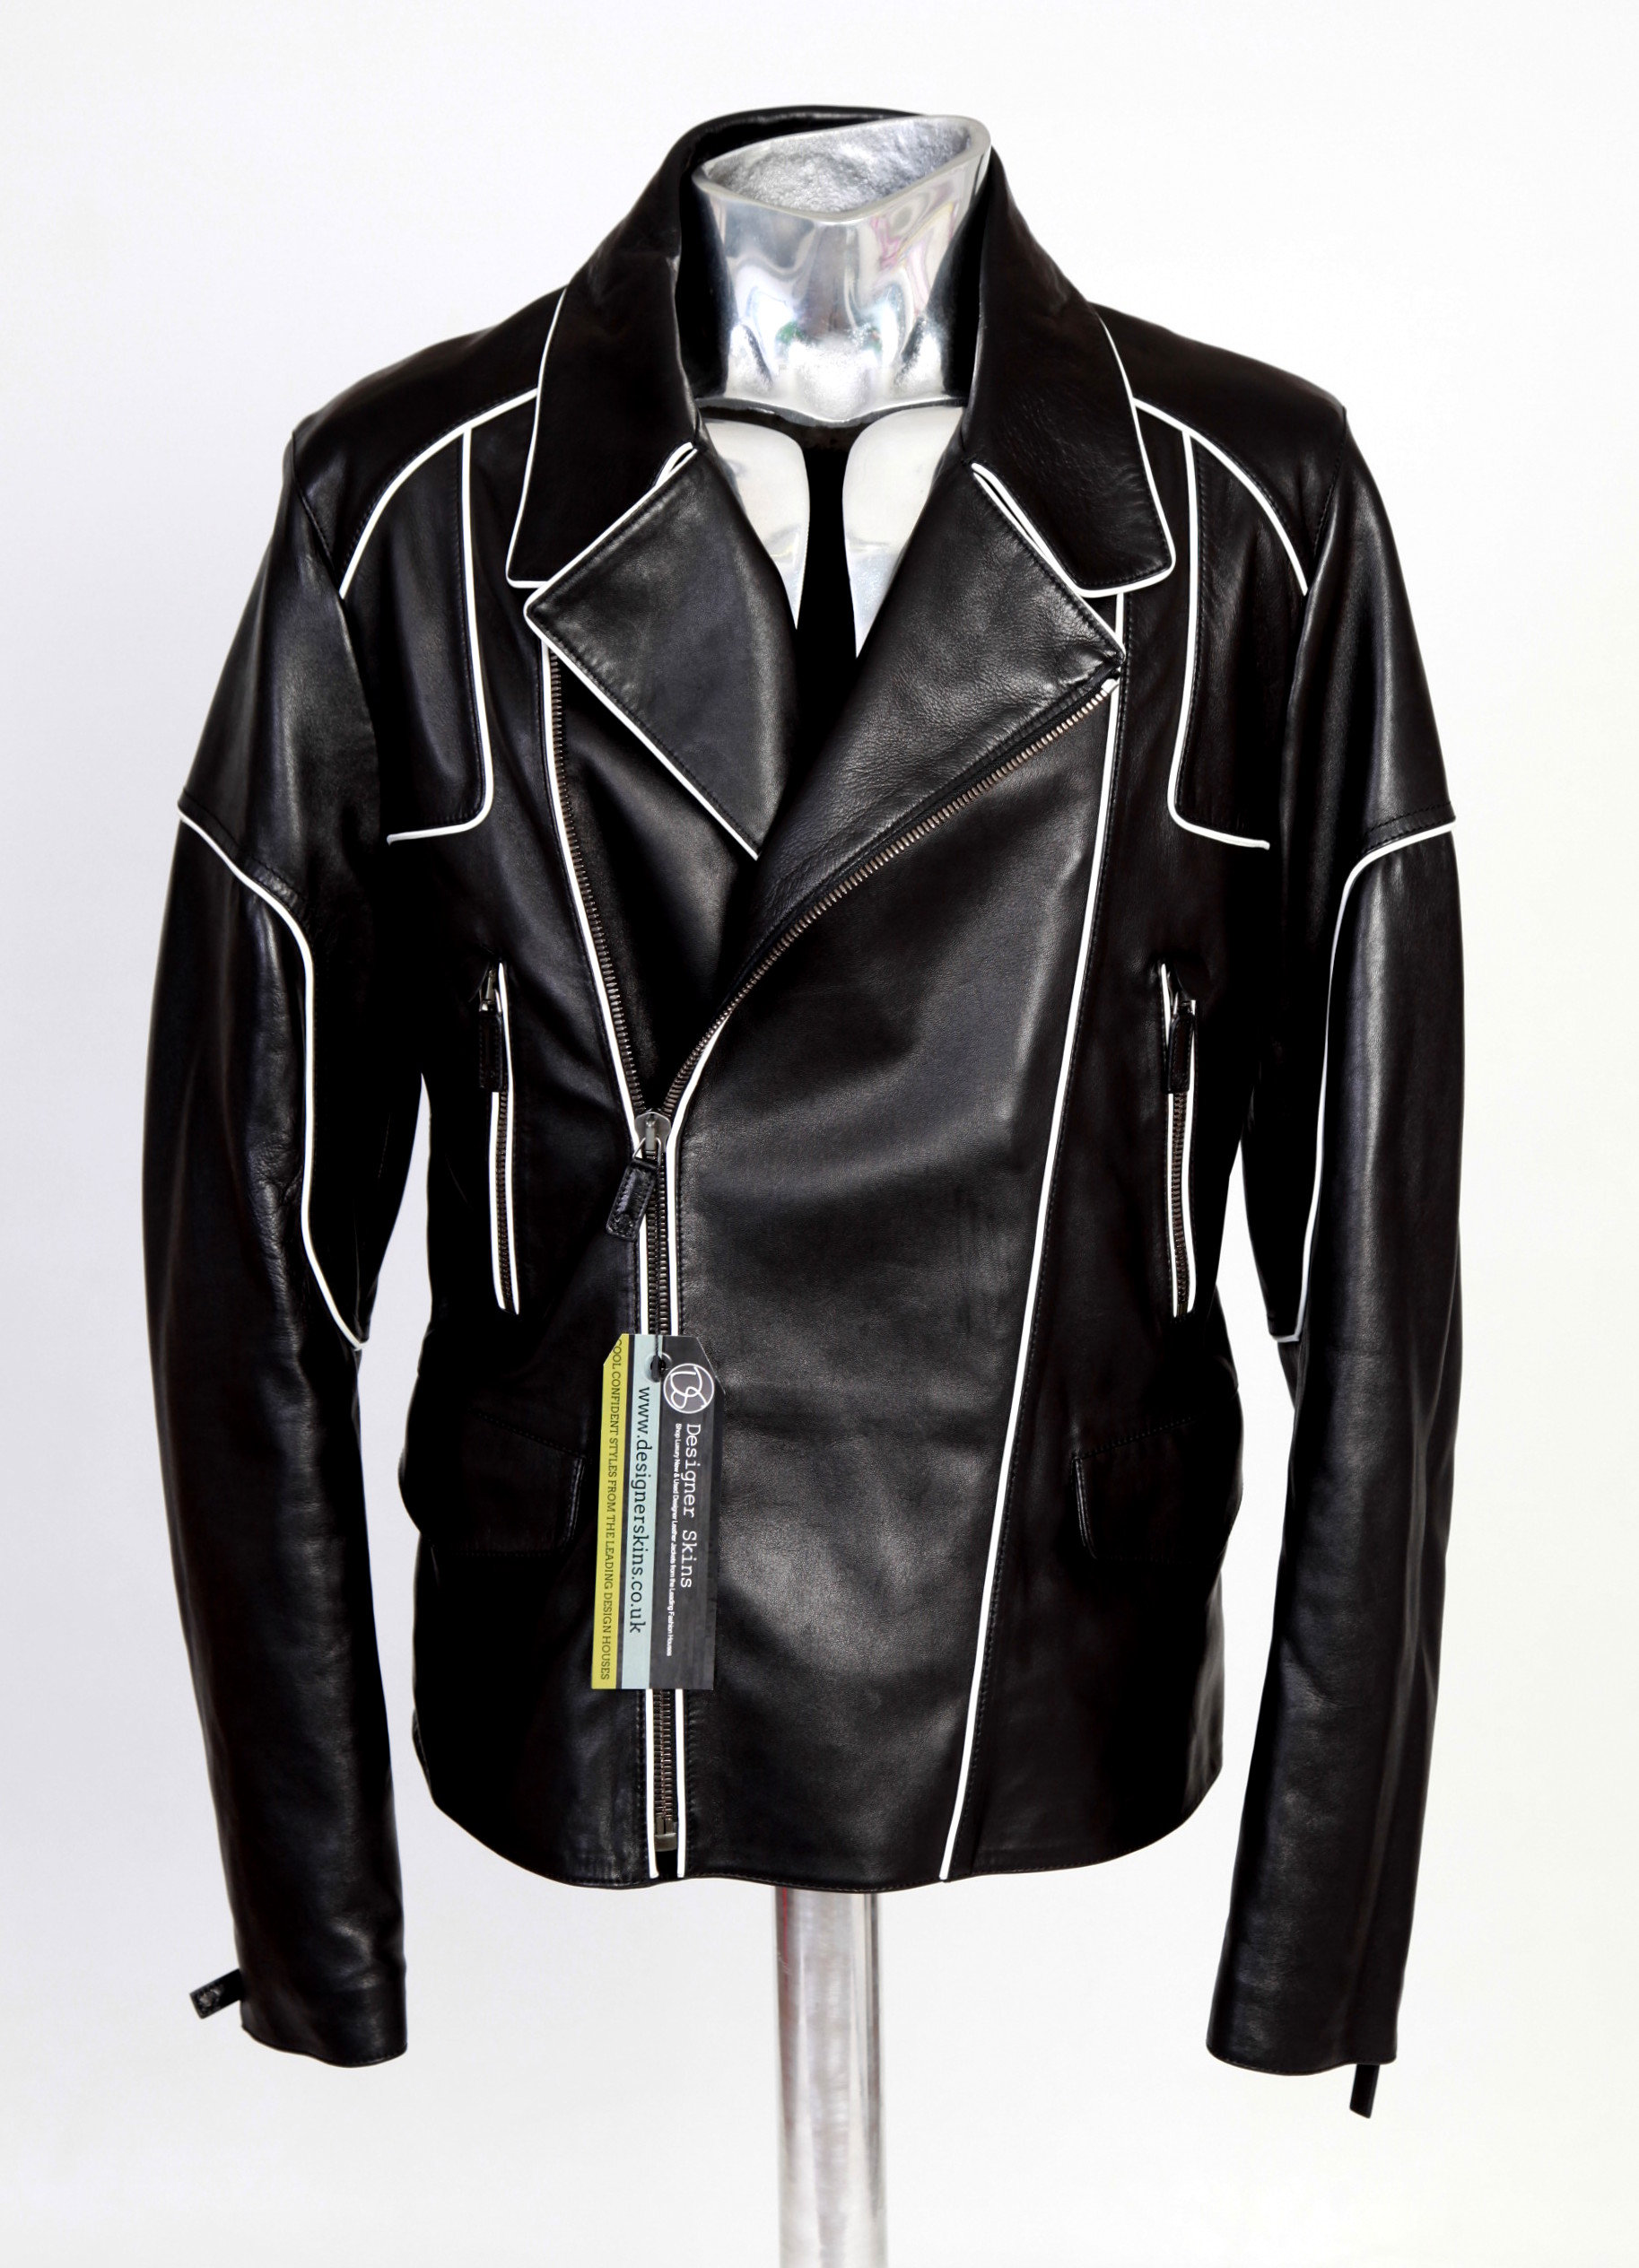 6dde378b61831 Shop Luxury New & Used Designer Leather Jackets from the Leading Fashion  Houses